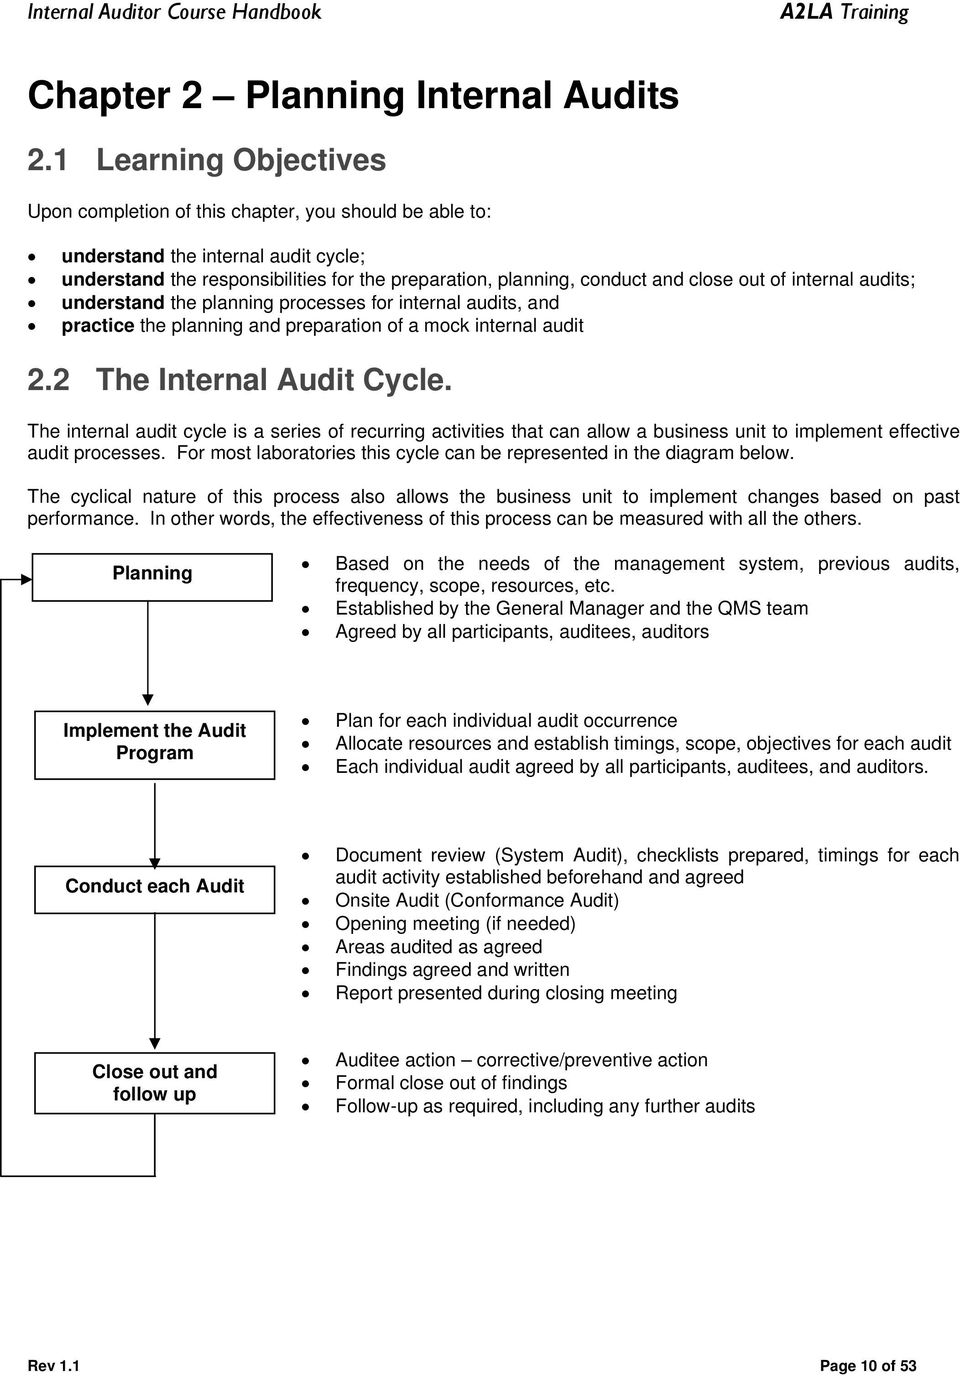 Internal Auditing Course - PDF